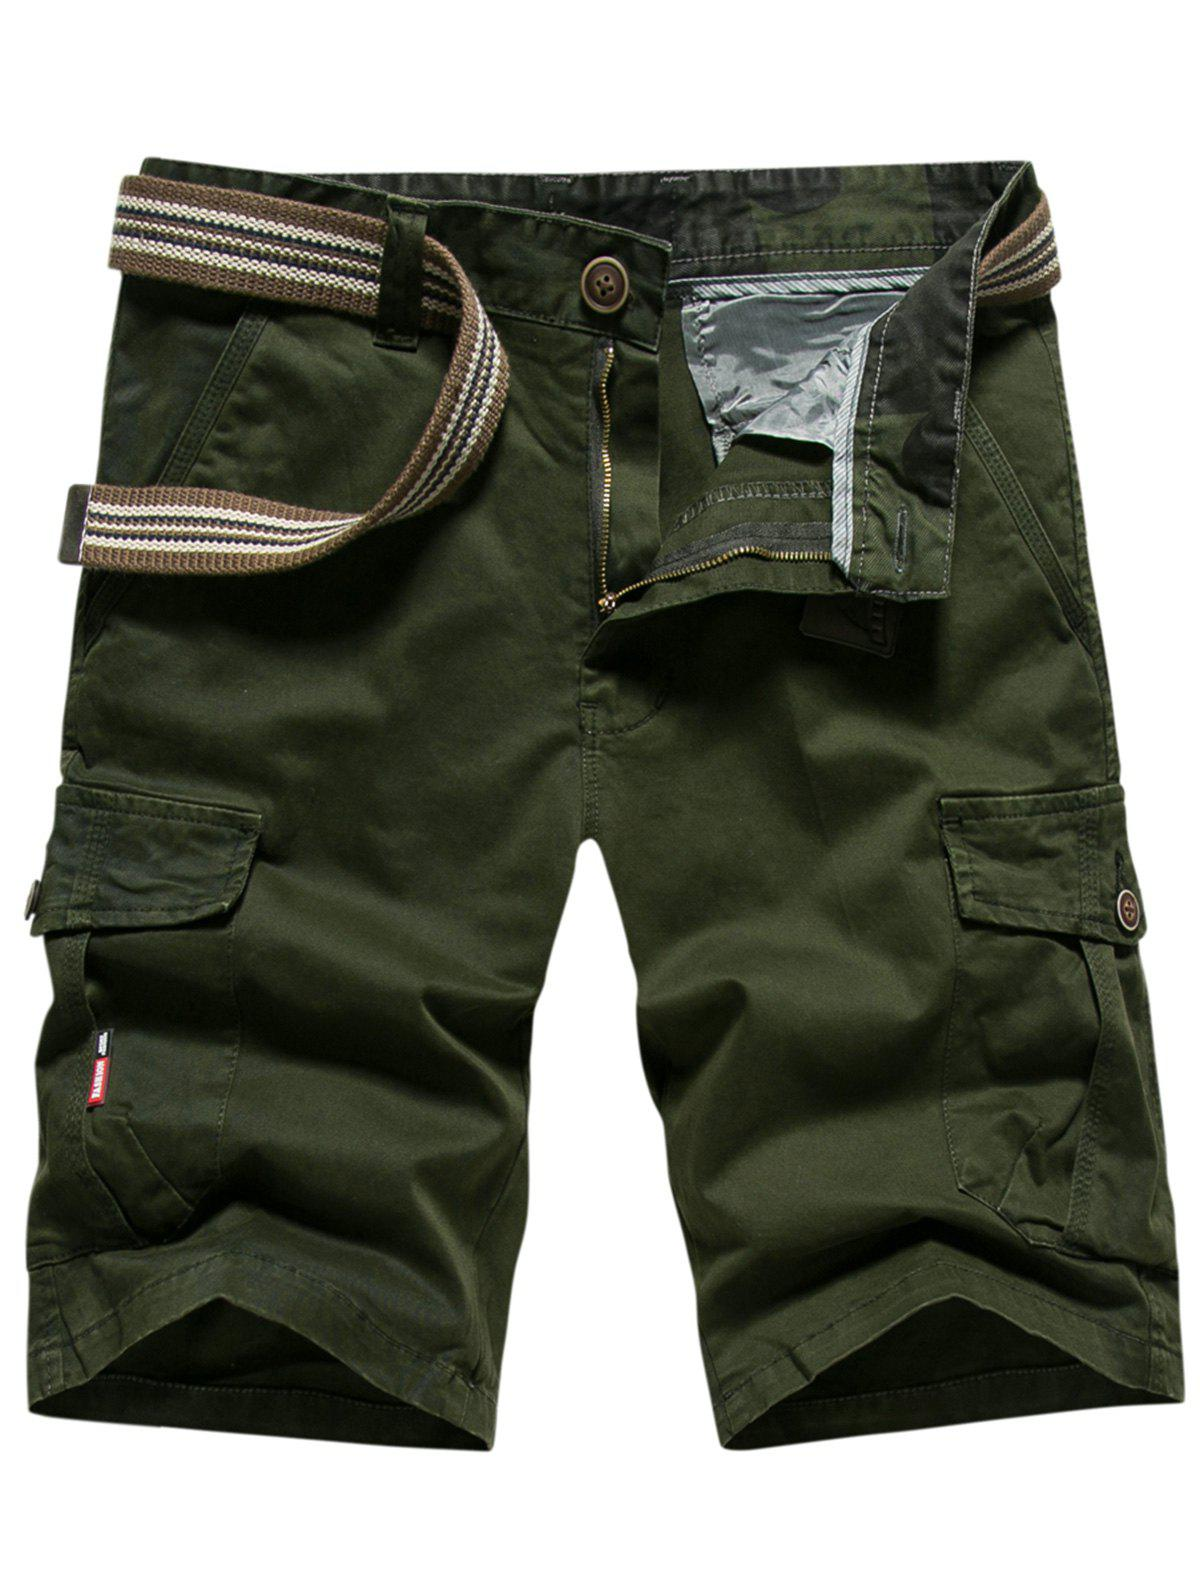 New Loose-fitting Casual Cargo Shorts